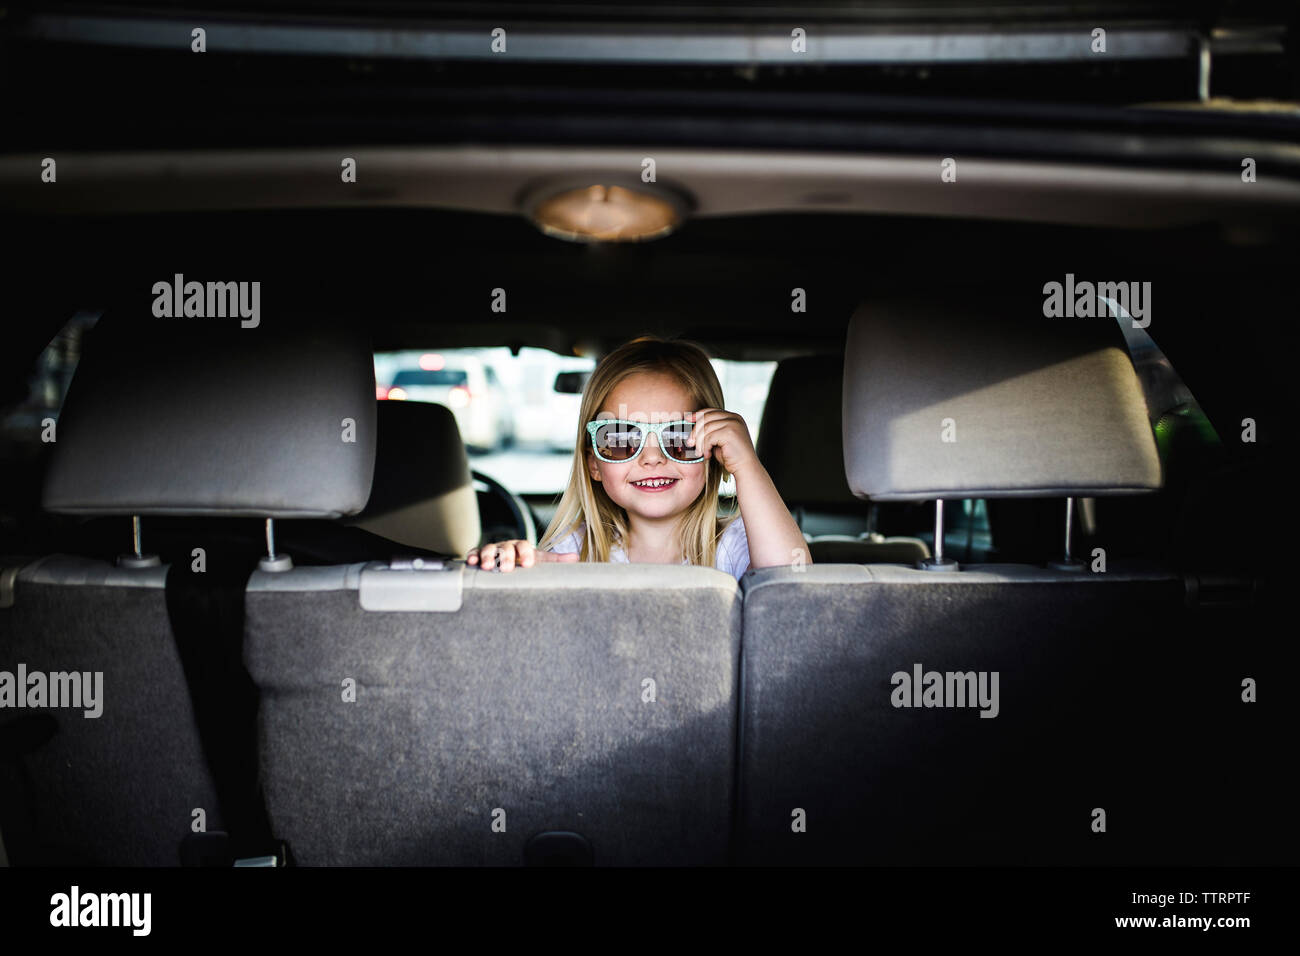 Portrait of girl wearing sunglasses while sitting in car Stock Photo